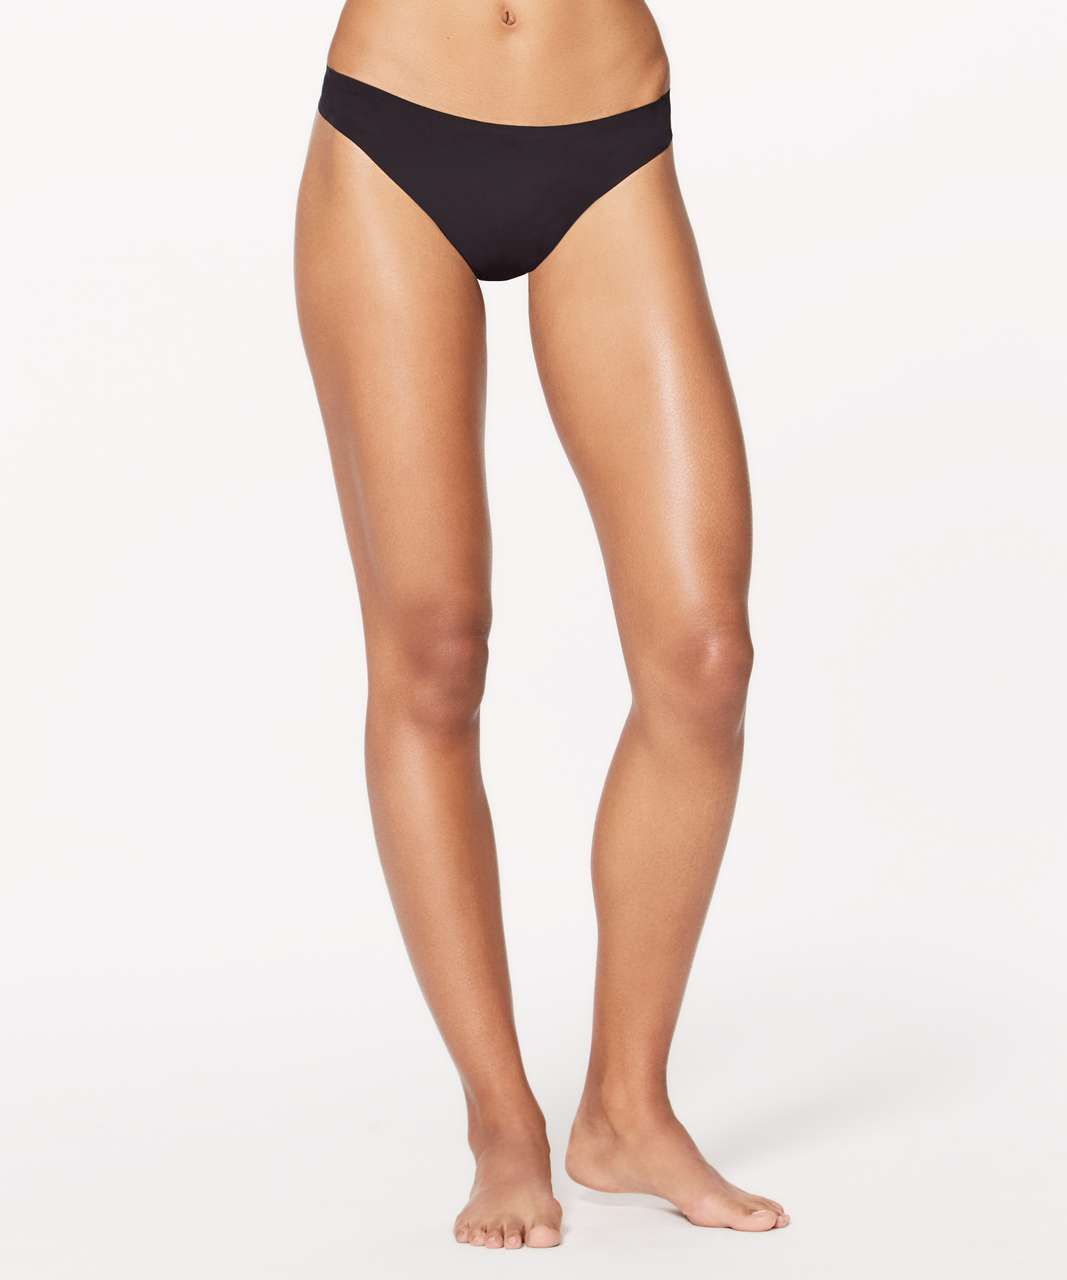 Lululemon Namastay Put Thong II - Black